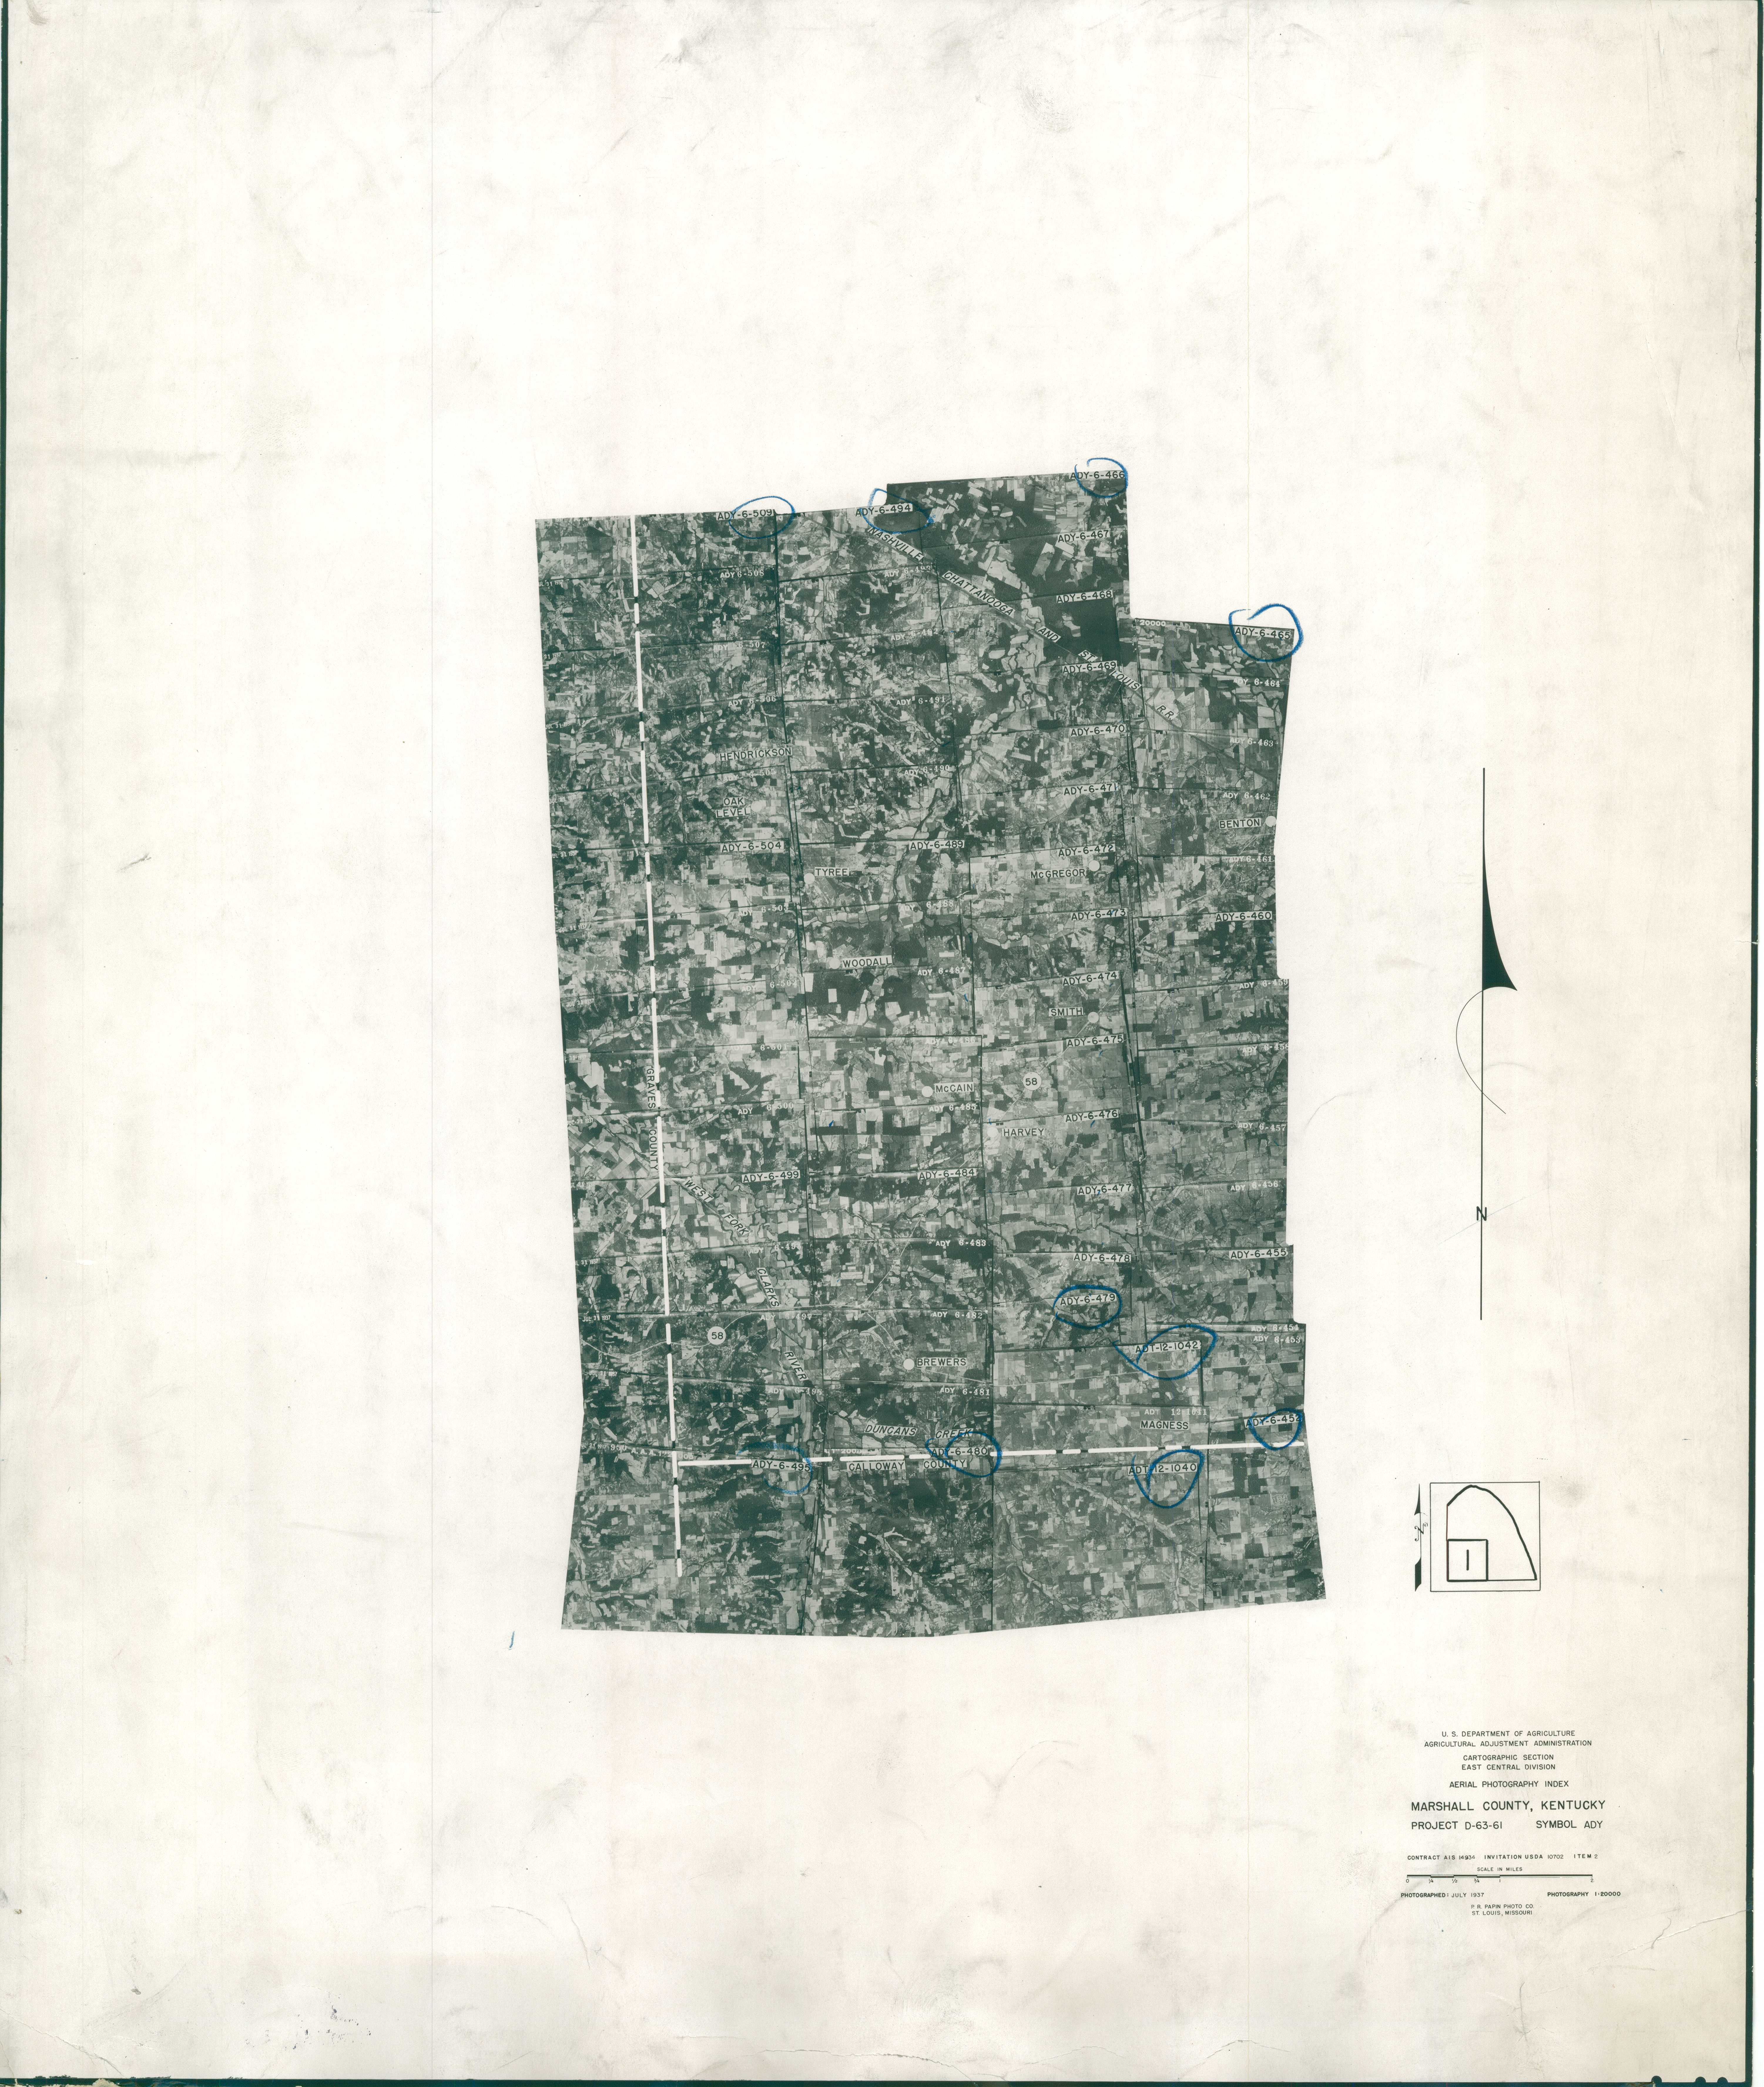 Index to Aerial Photography of Marshall County, Kentucky 1